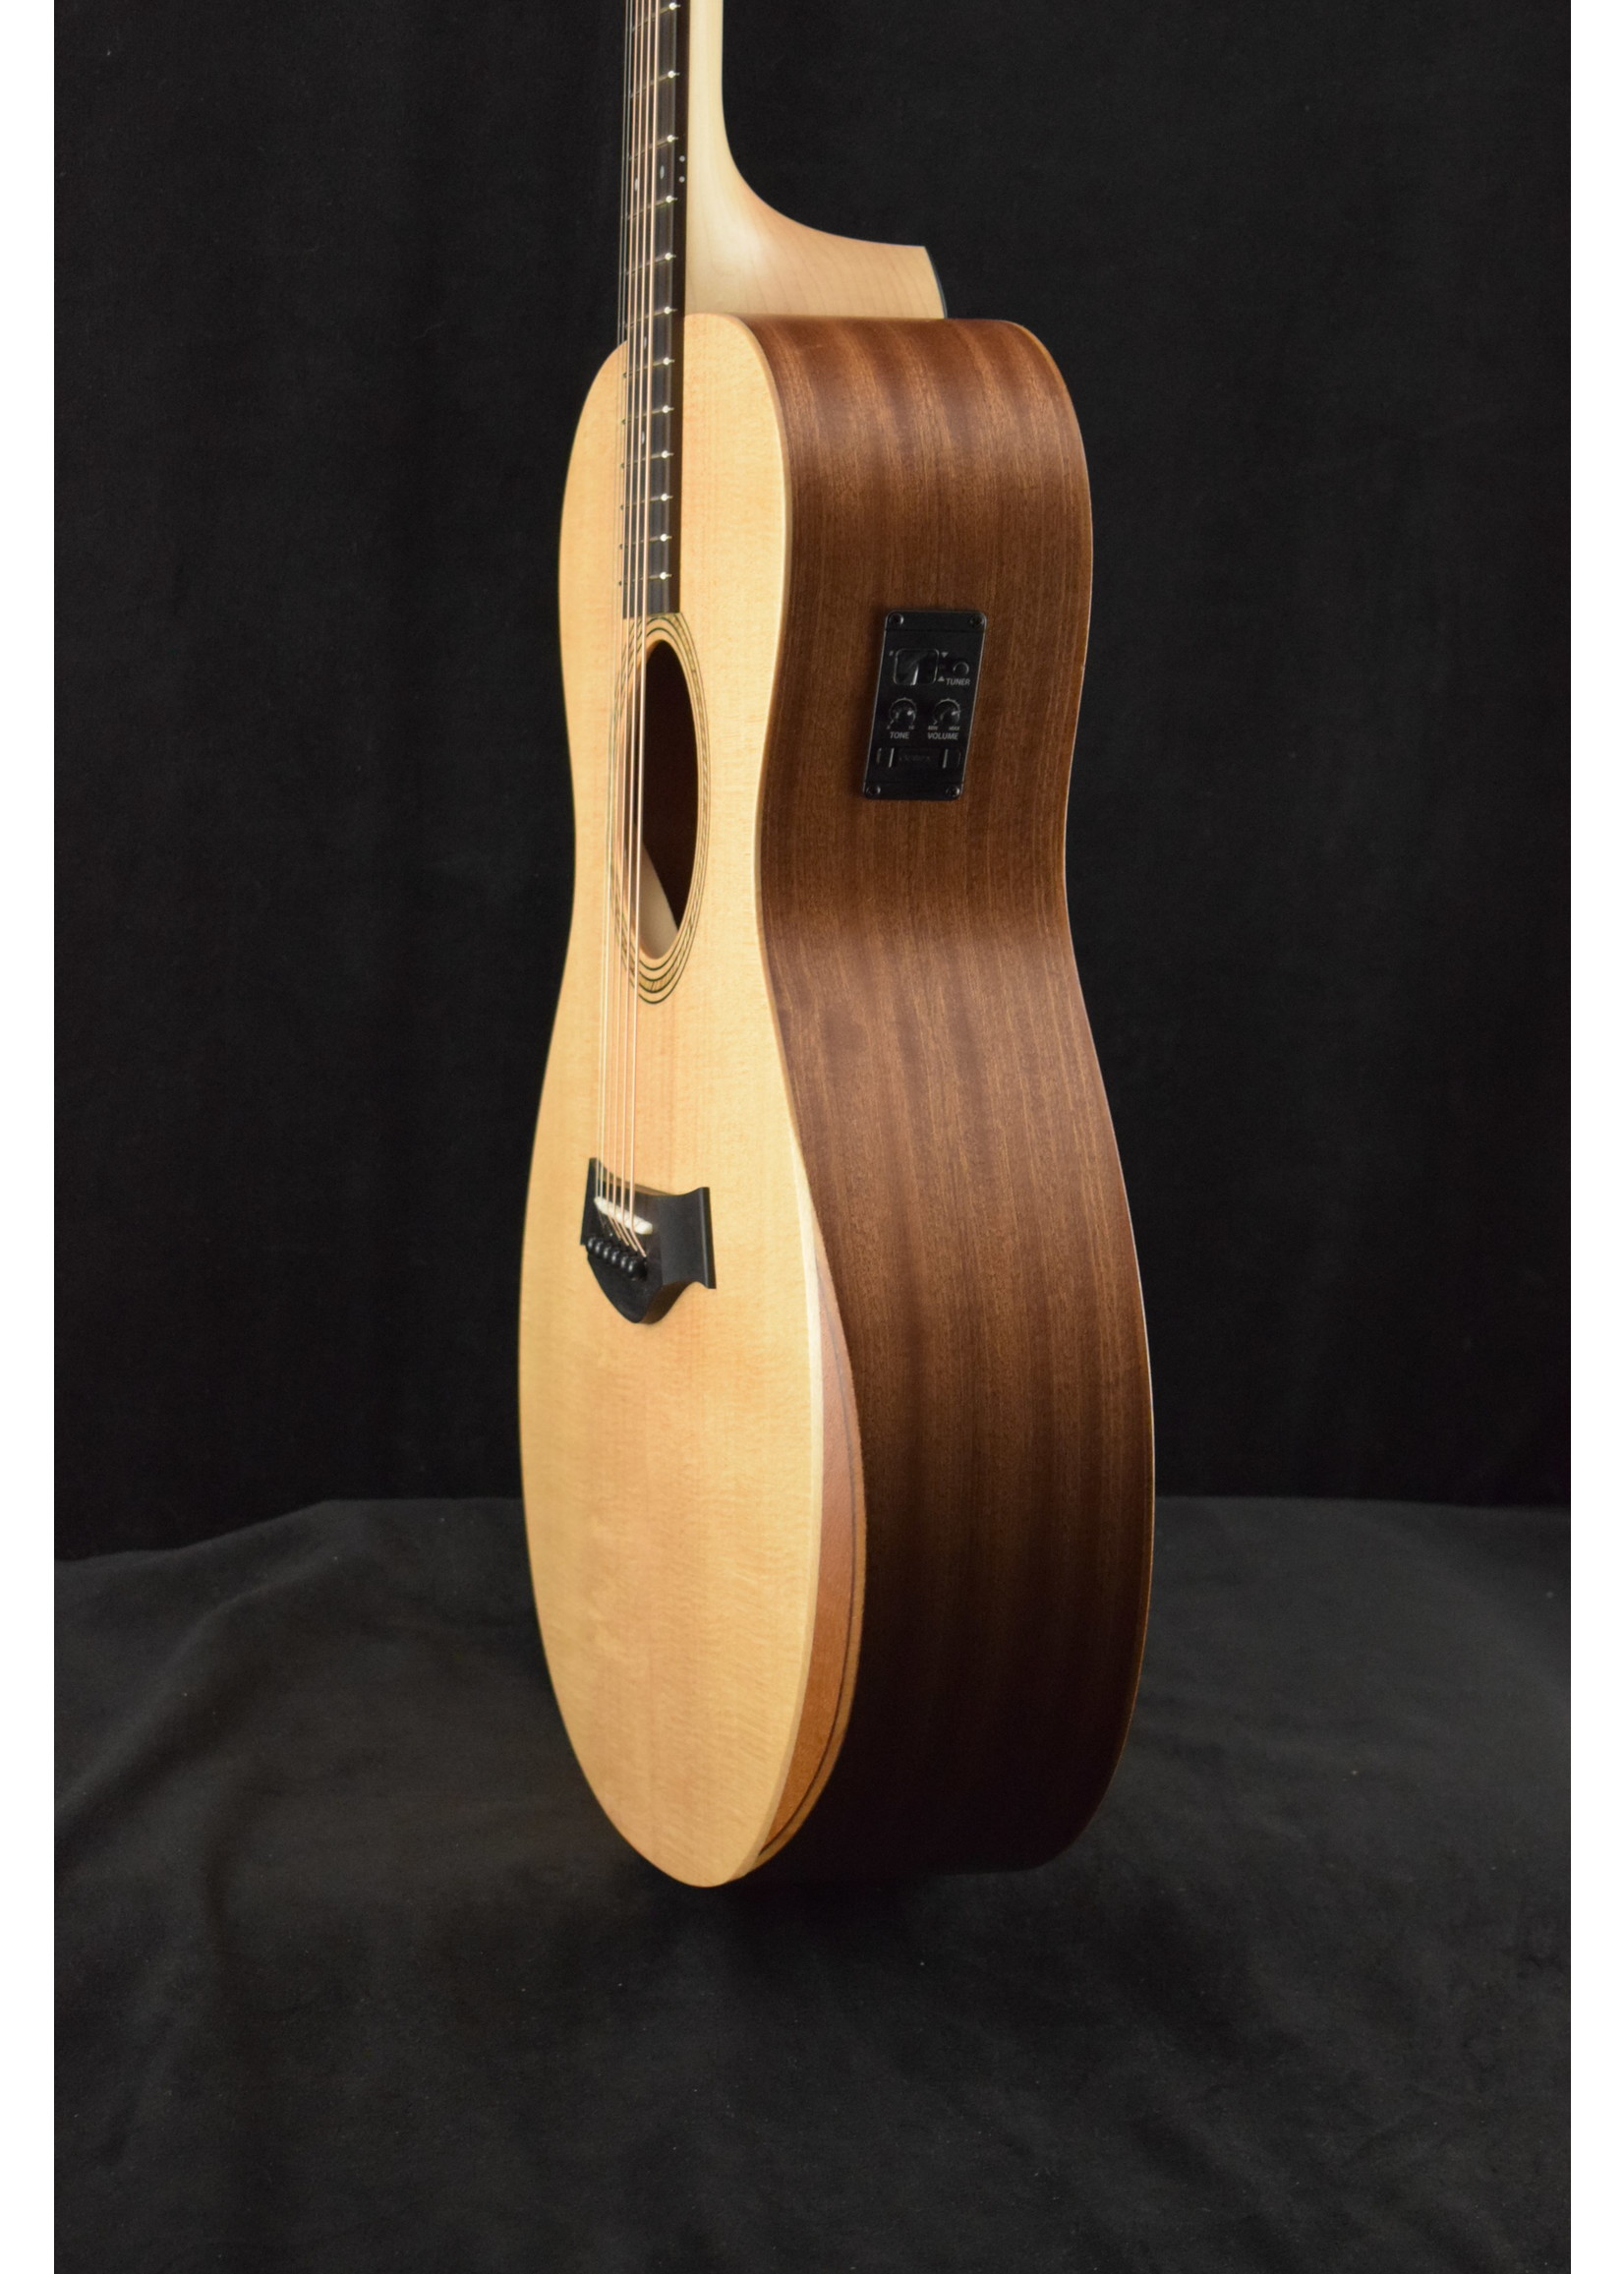 Taylor Taylor Academy 12e LH Left-Handed